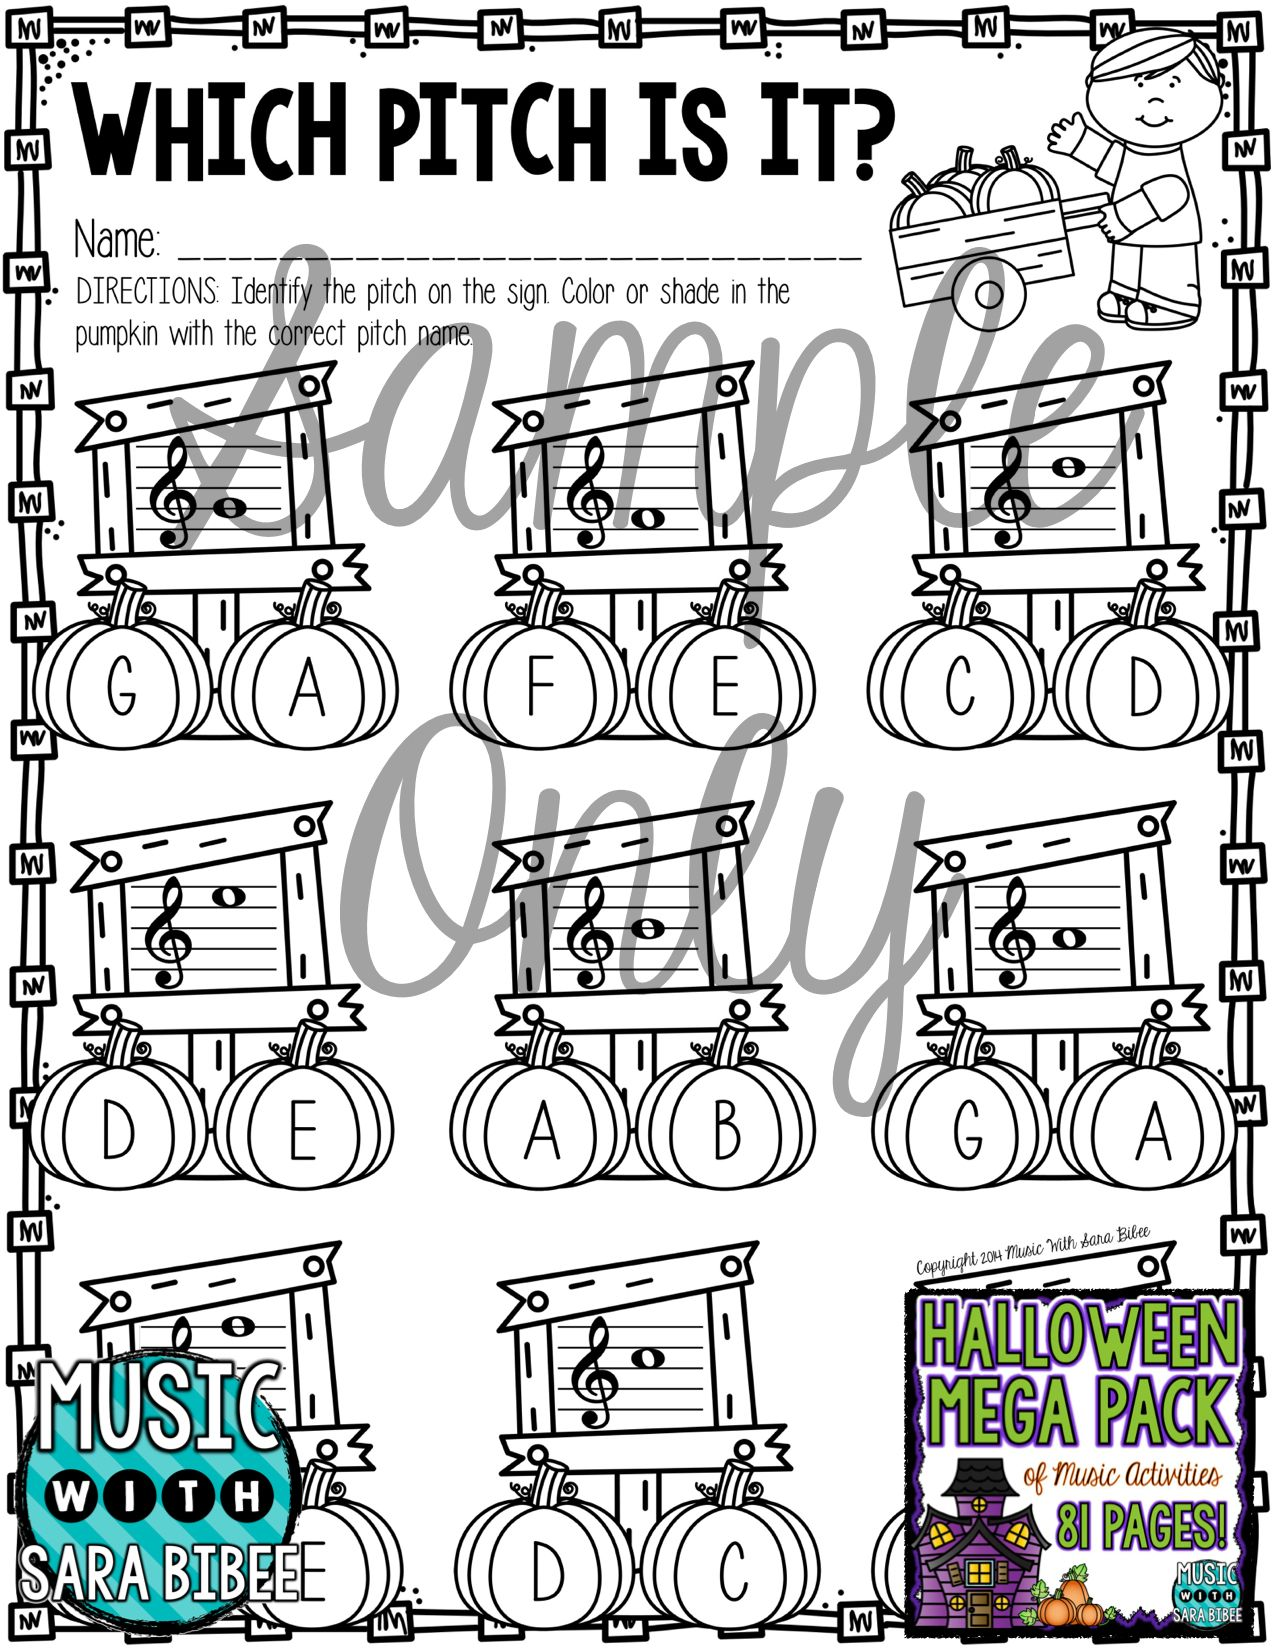 Halloween Mega Pack Of Music Worksheets 81 Pages